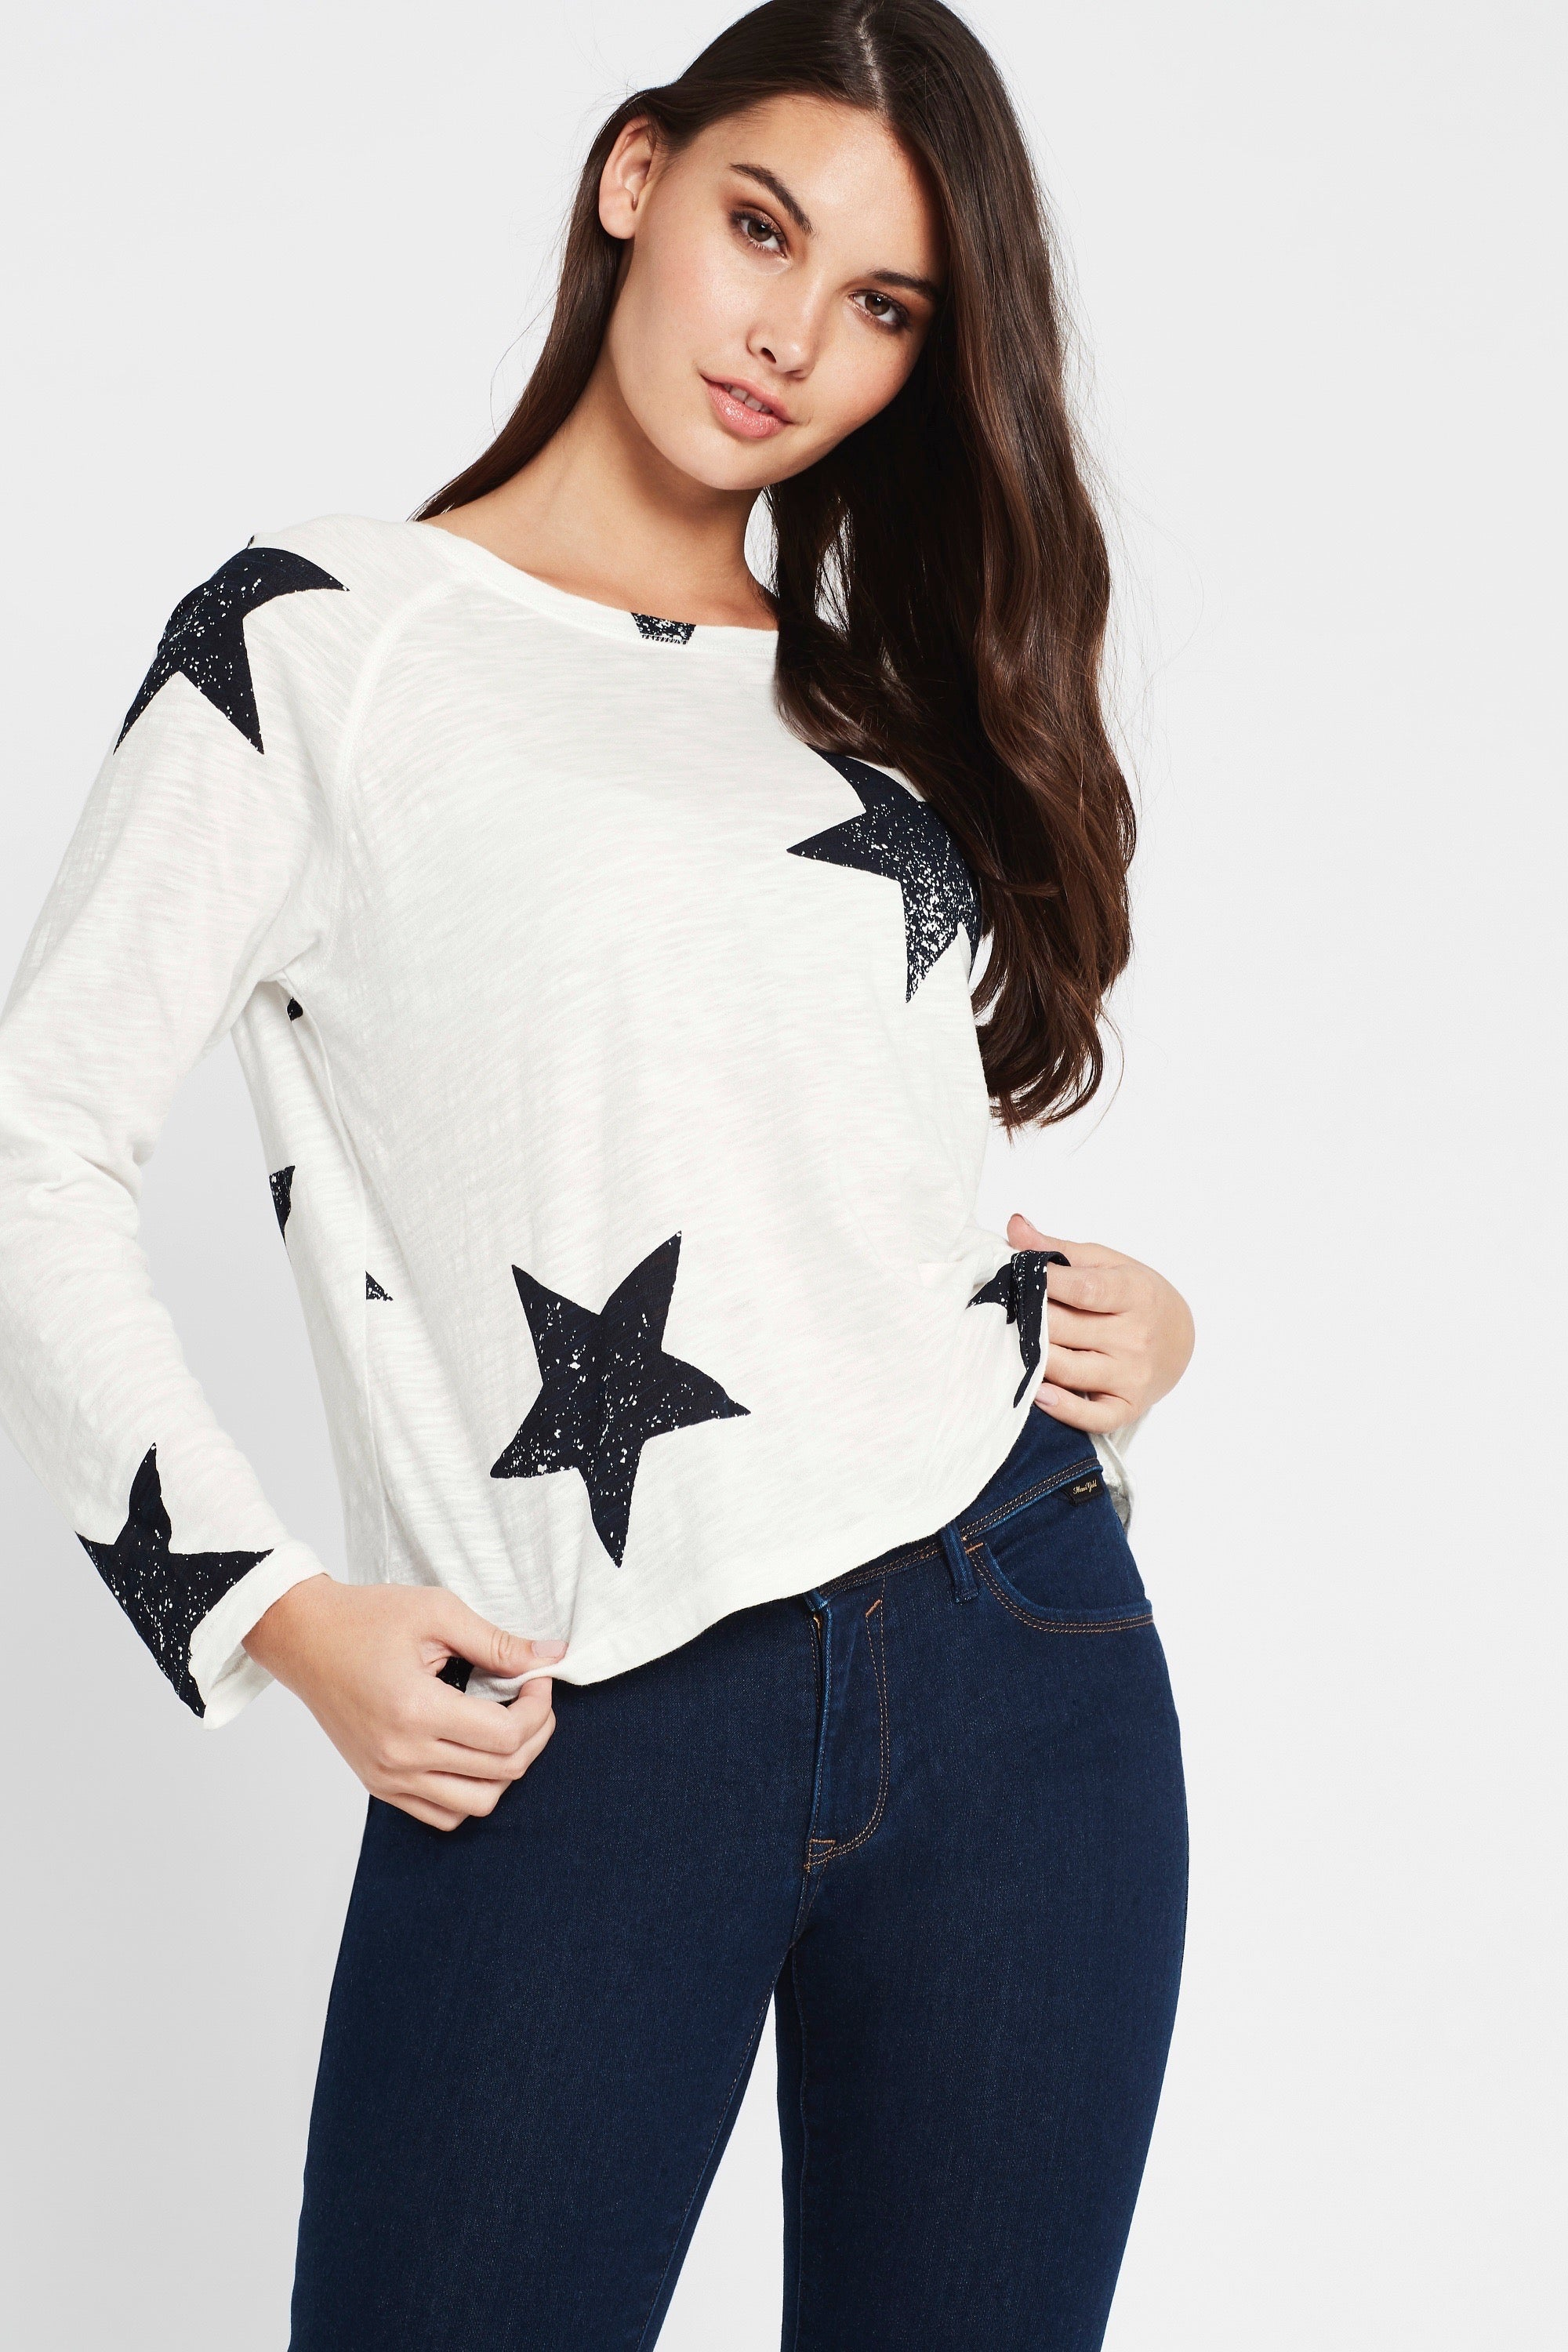 Yvette Long Sleeve T-Shirt Winter White Large Star